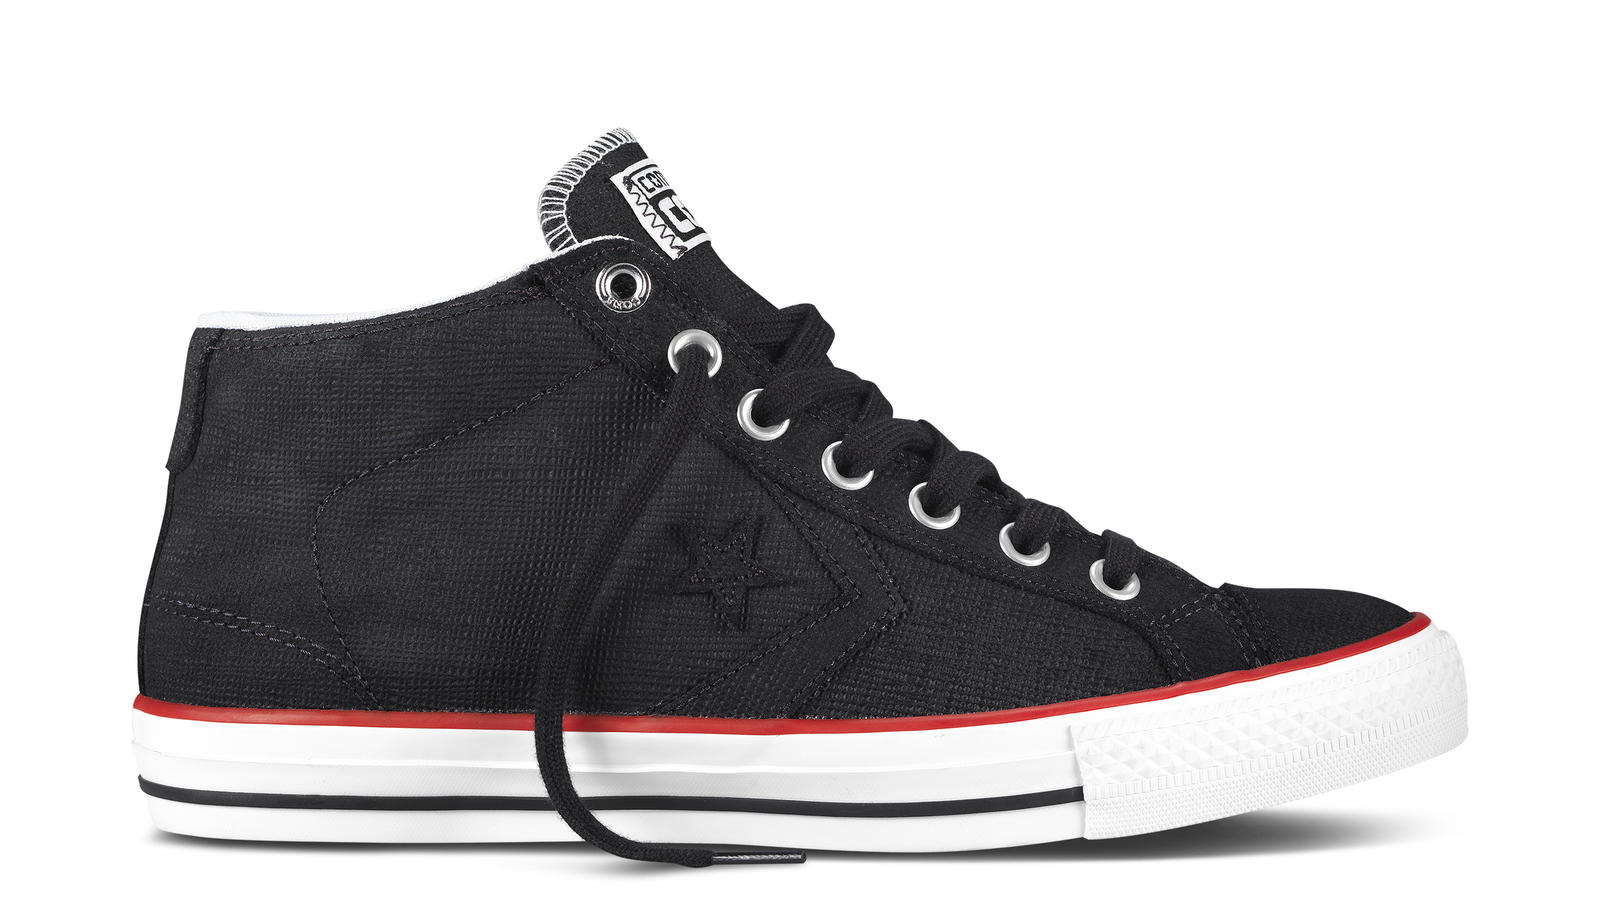 Converse Announces Spring 2014 CONS Collection Nike News